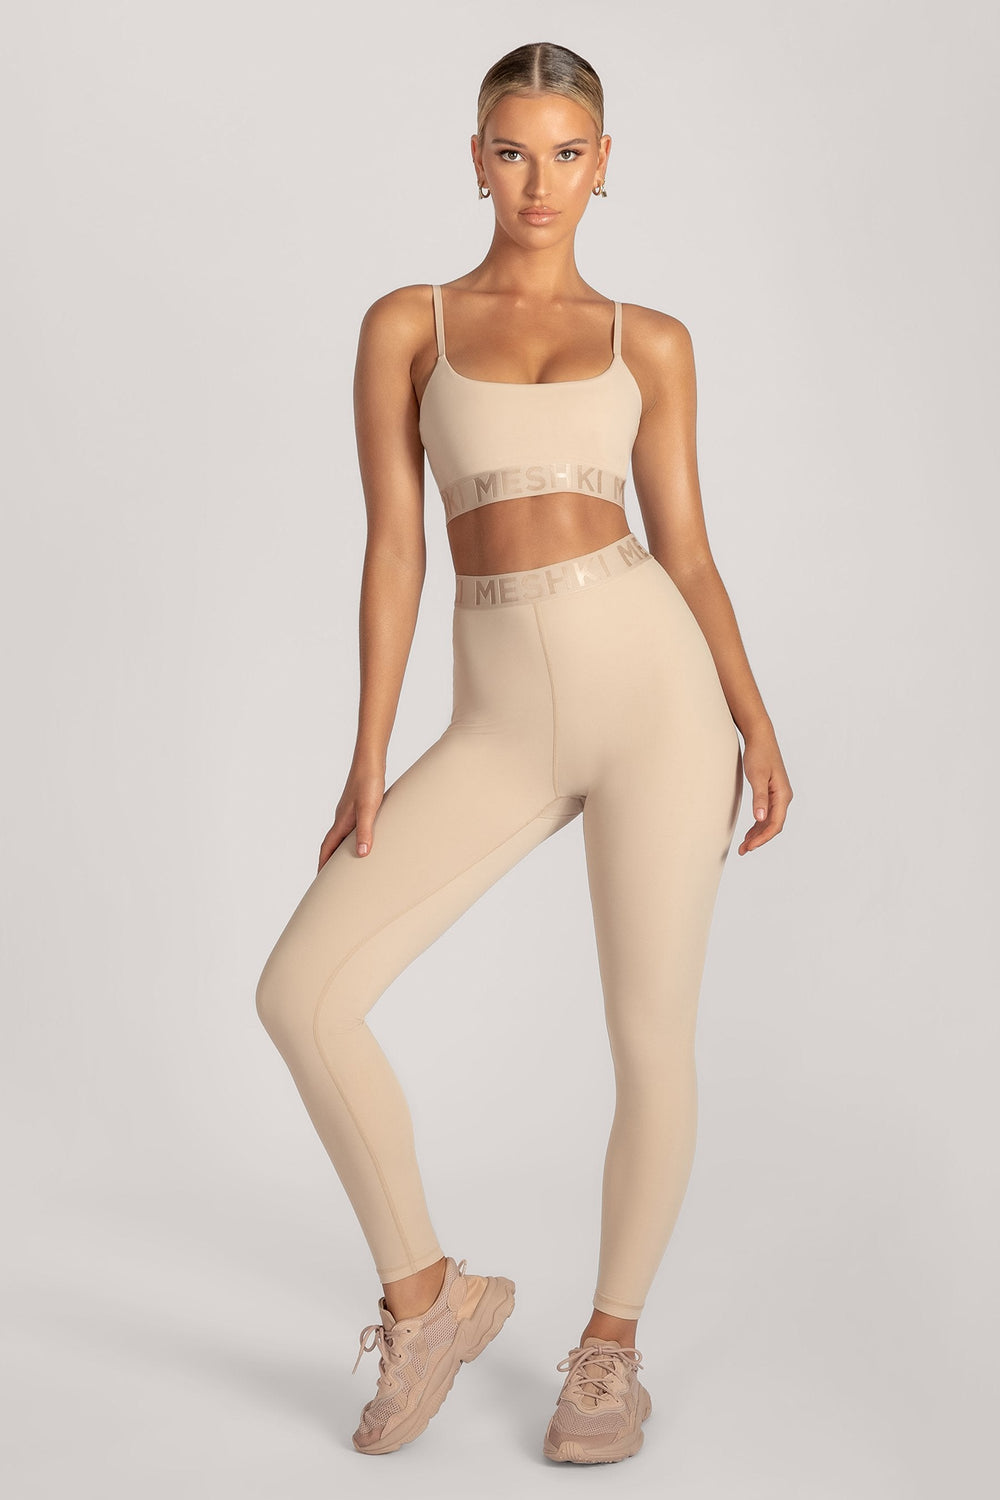 Acacia Meshki Full Length Leggings - Nude - MESHKI ?id=16076116983883